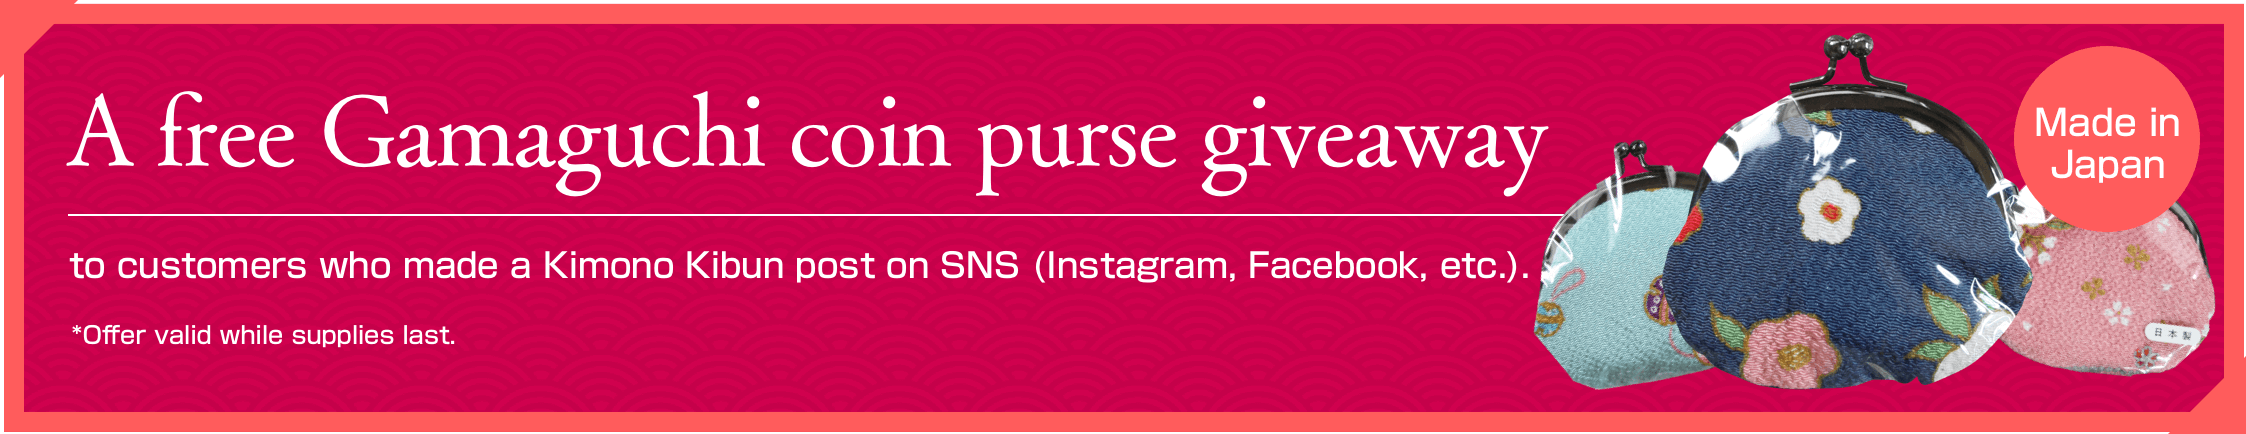 A free Gamaguchi coin purse giveaway to customers who made a Kimono Kibun post on SNS (Instagram, Facebook, etc.). *Offer valid while supplies last.